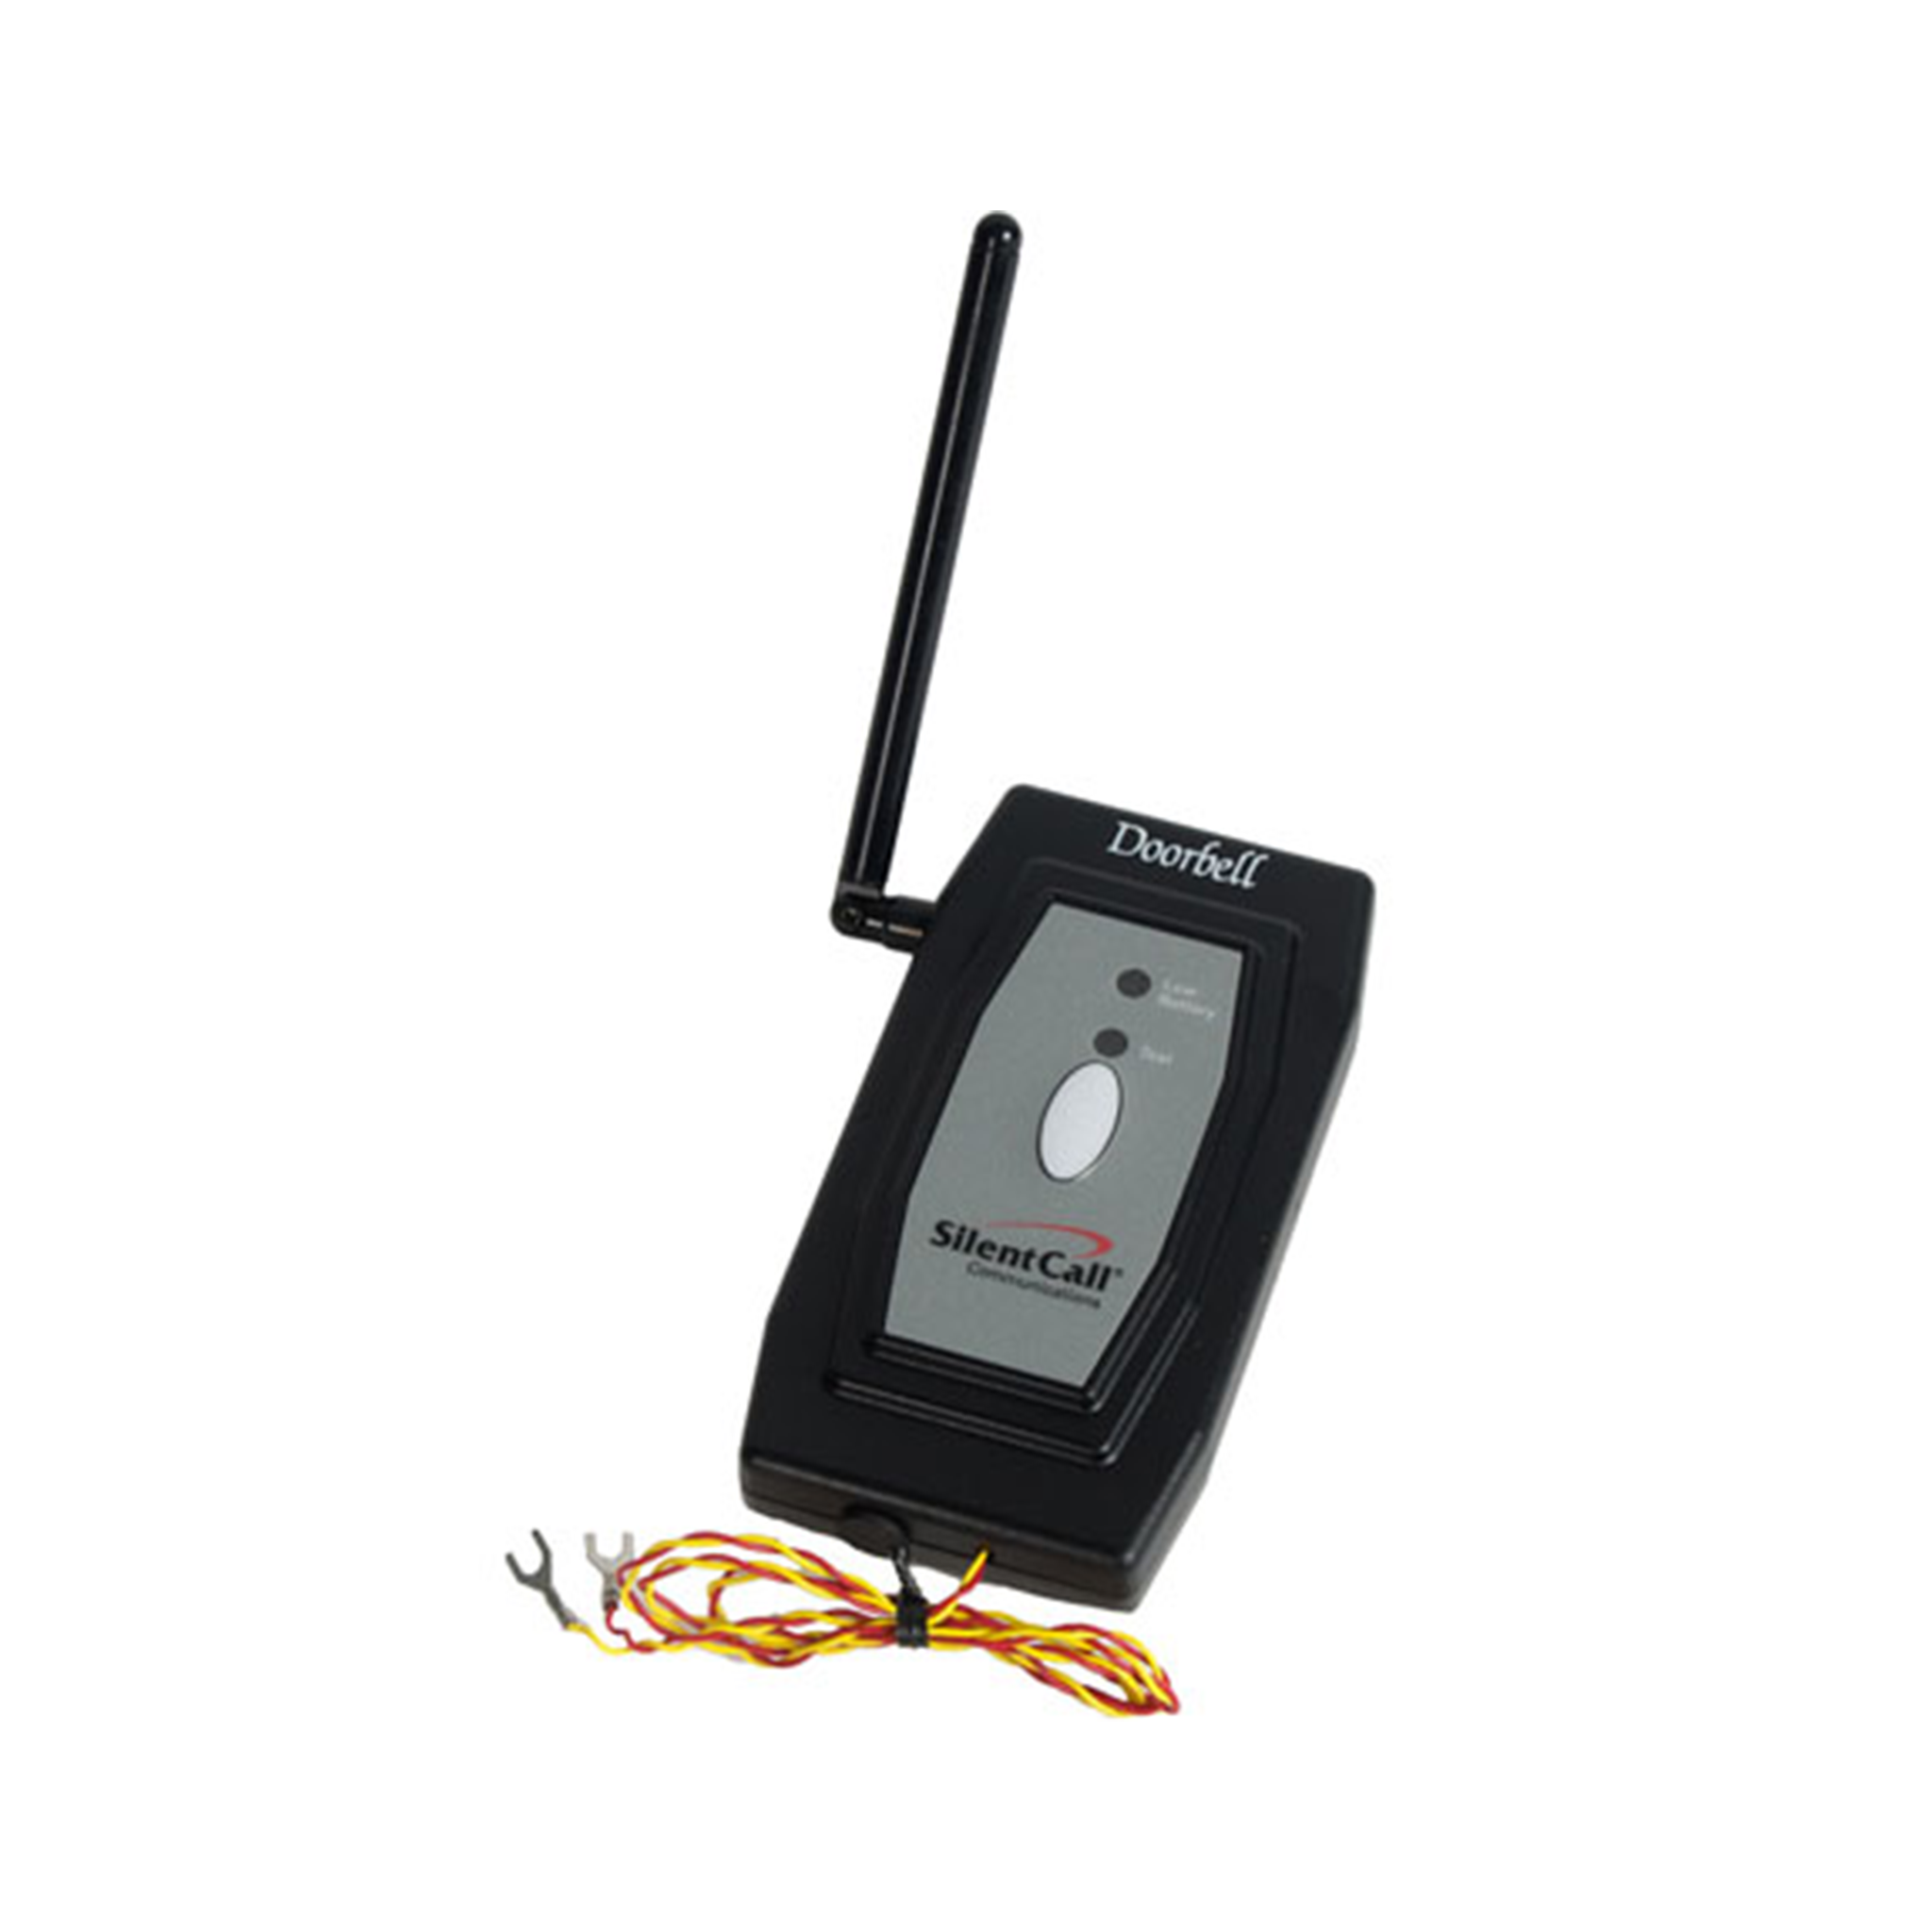 Signature Series Transmitters Silent Call Communications Doorbell Wiring And Installation Direct Wired 418 Mhz Transmitter Db1 Ss